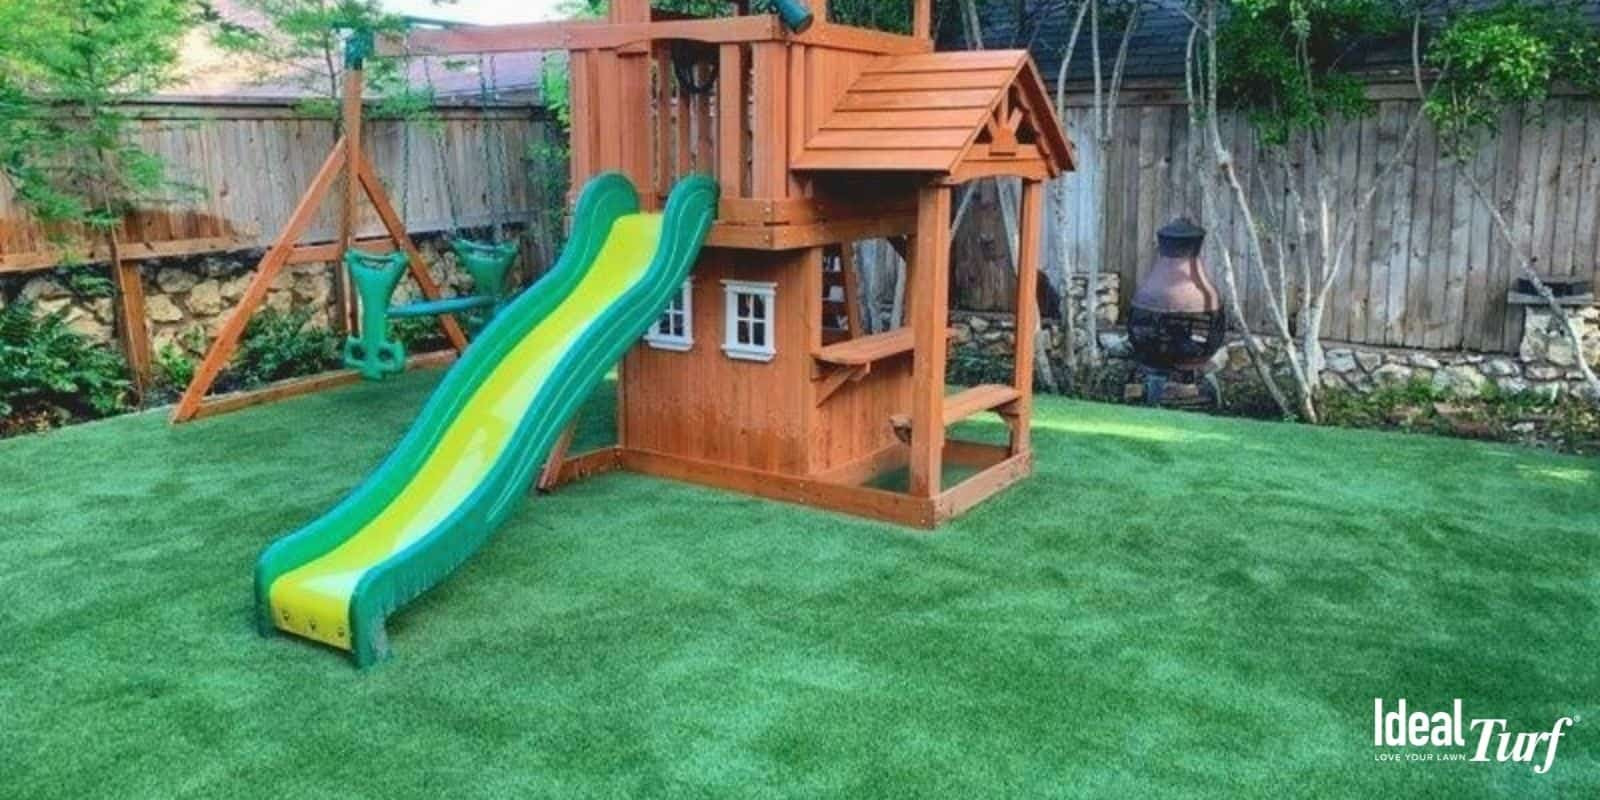 Wooden children's play structure on artificial turf in backyard